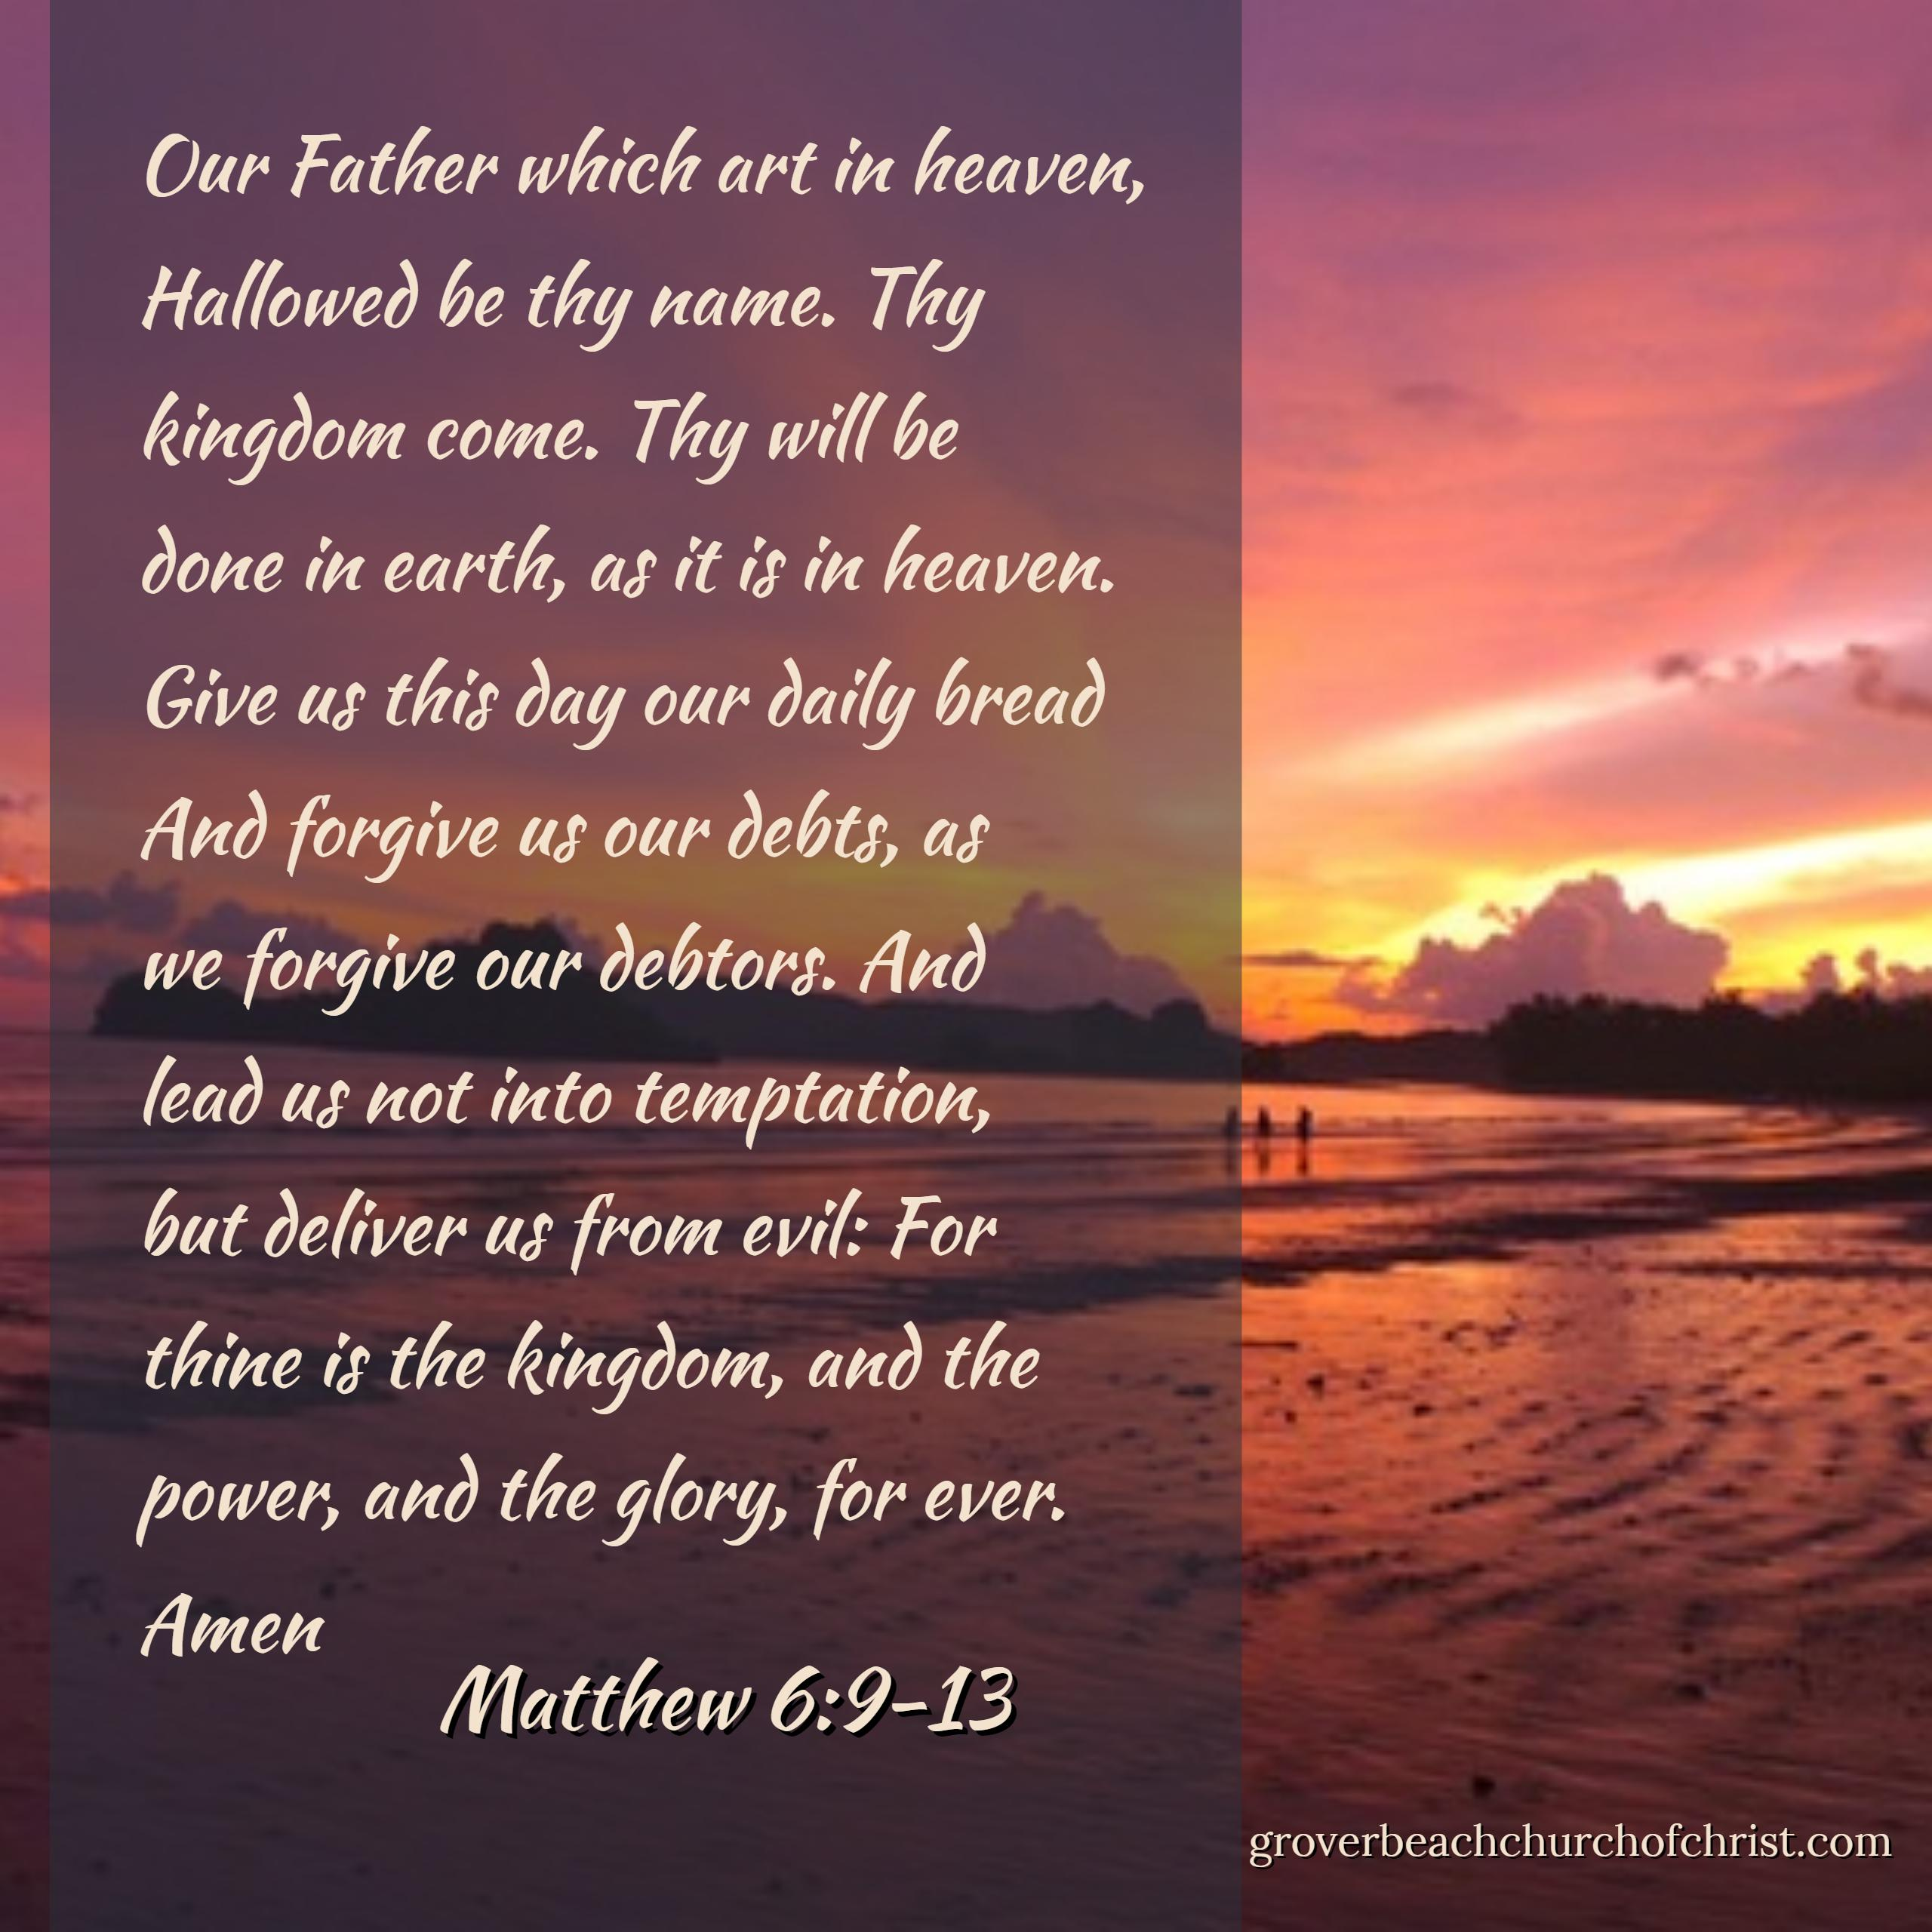 matthew-6:9-13-the-lords-prayer